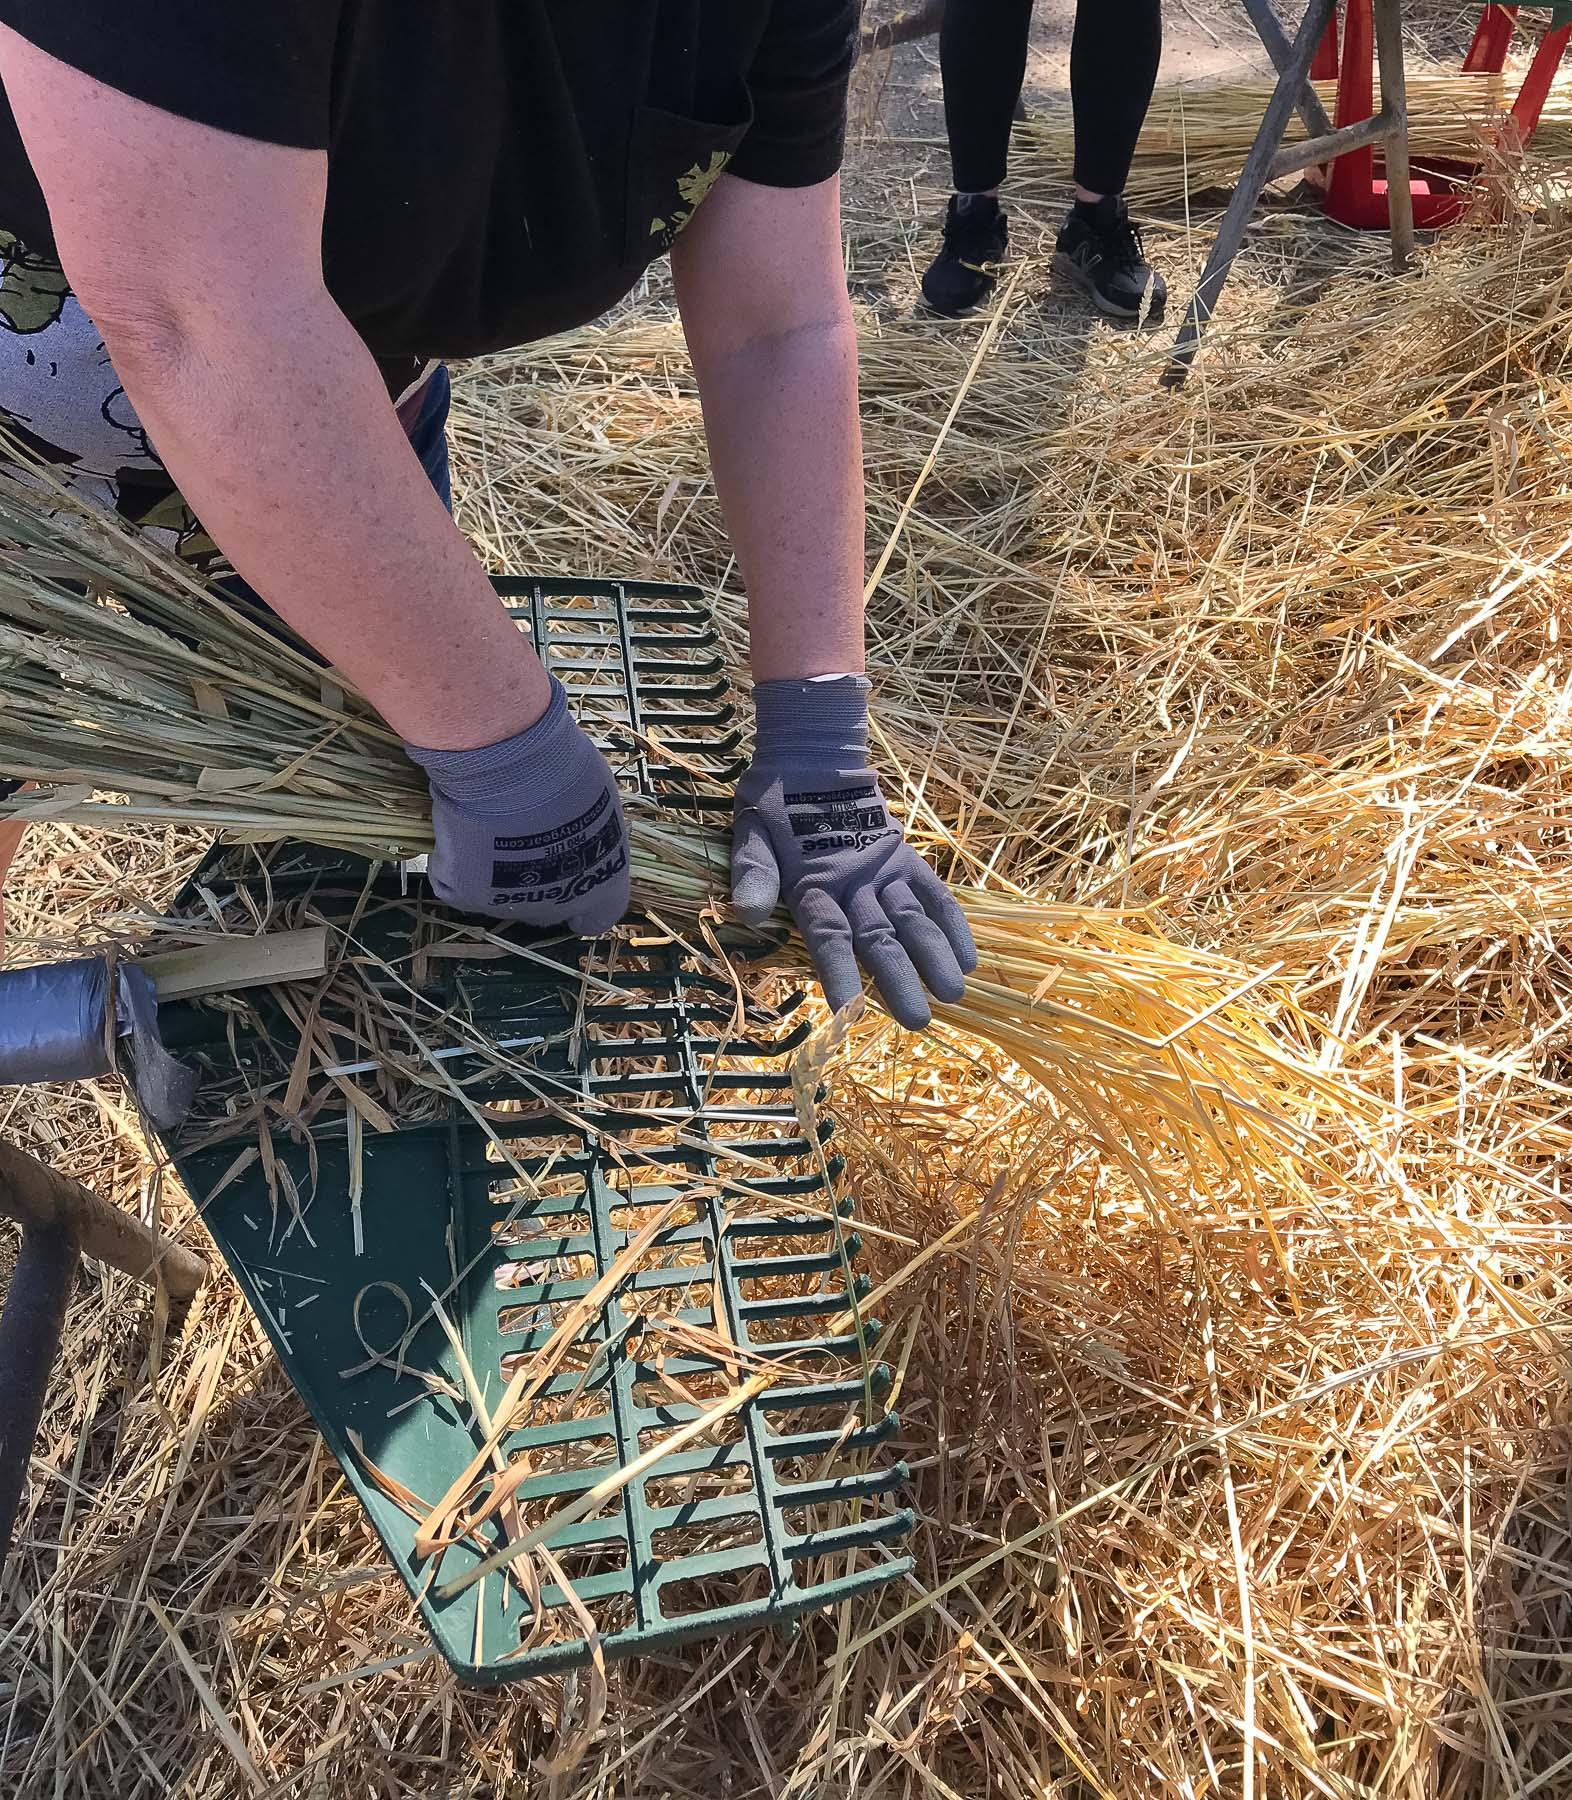 Wheat is pulled through a rake by gloved hands to prepare for weaving into toba at York. Photo by Caro Telfer